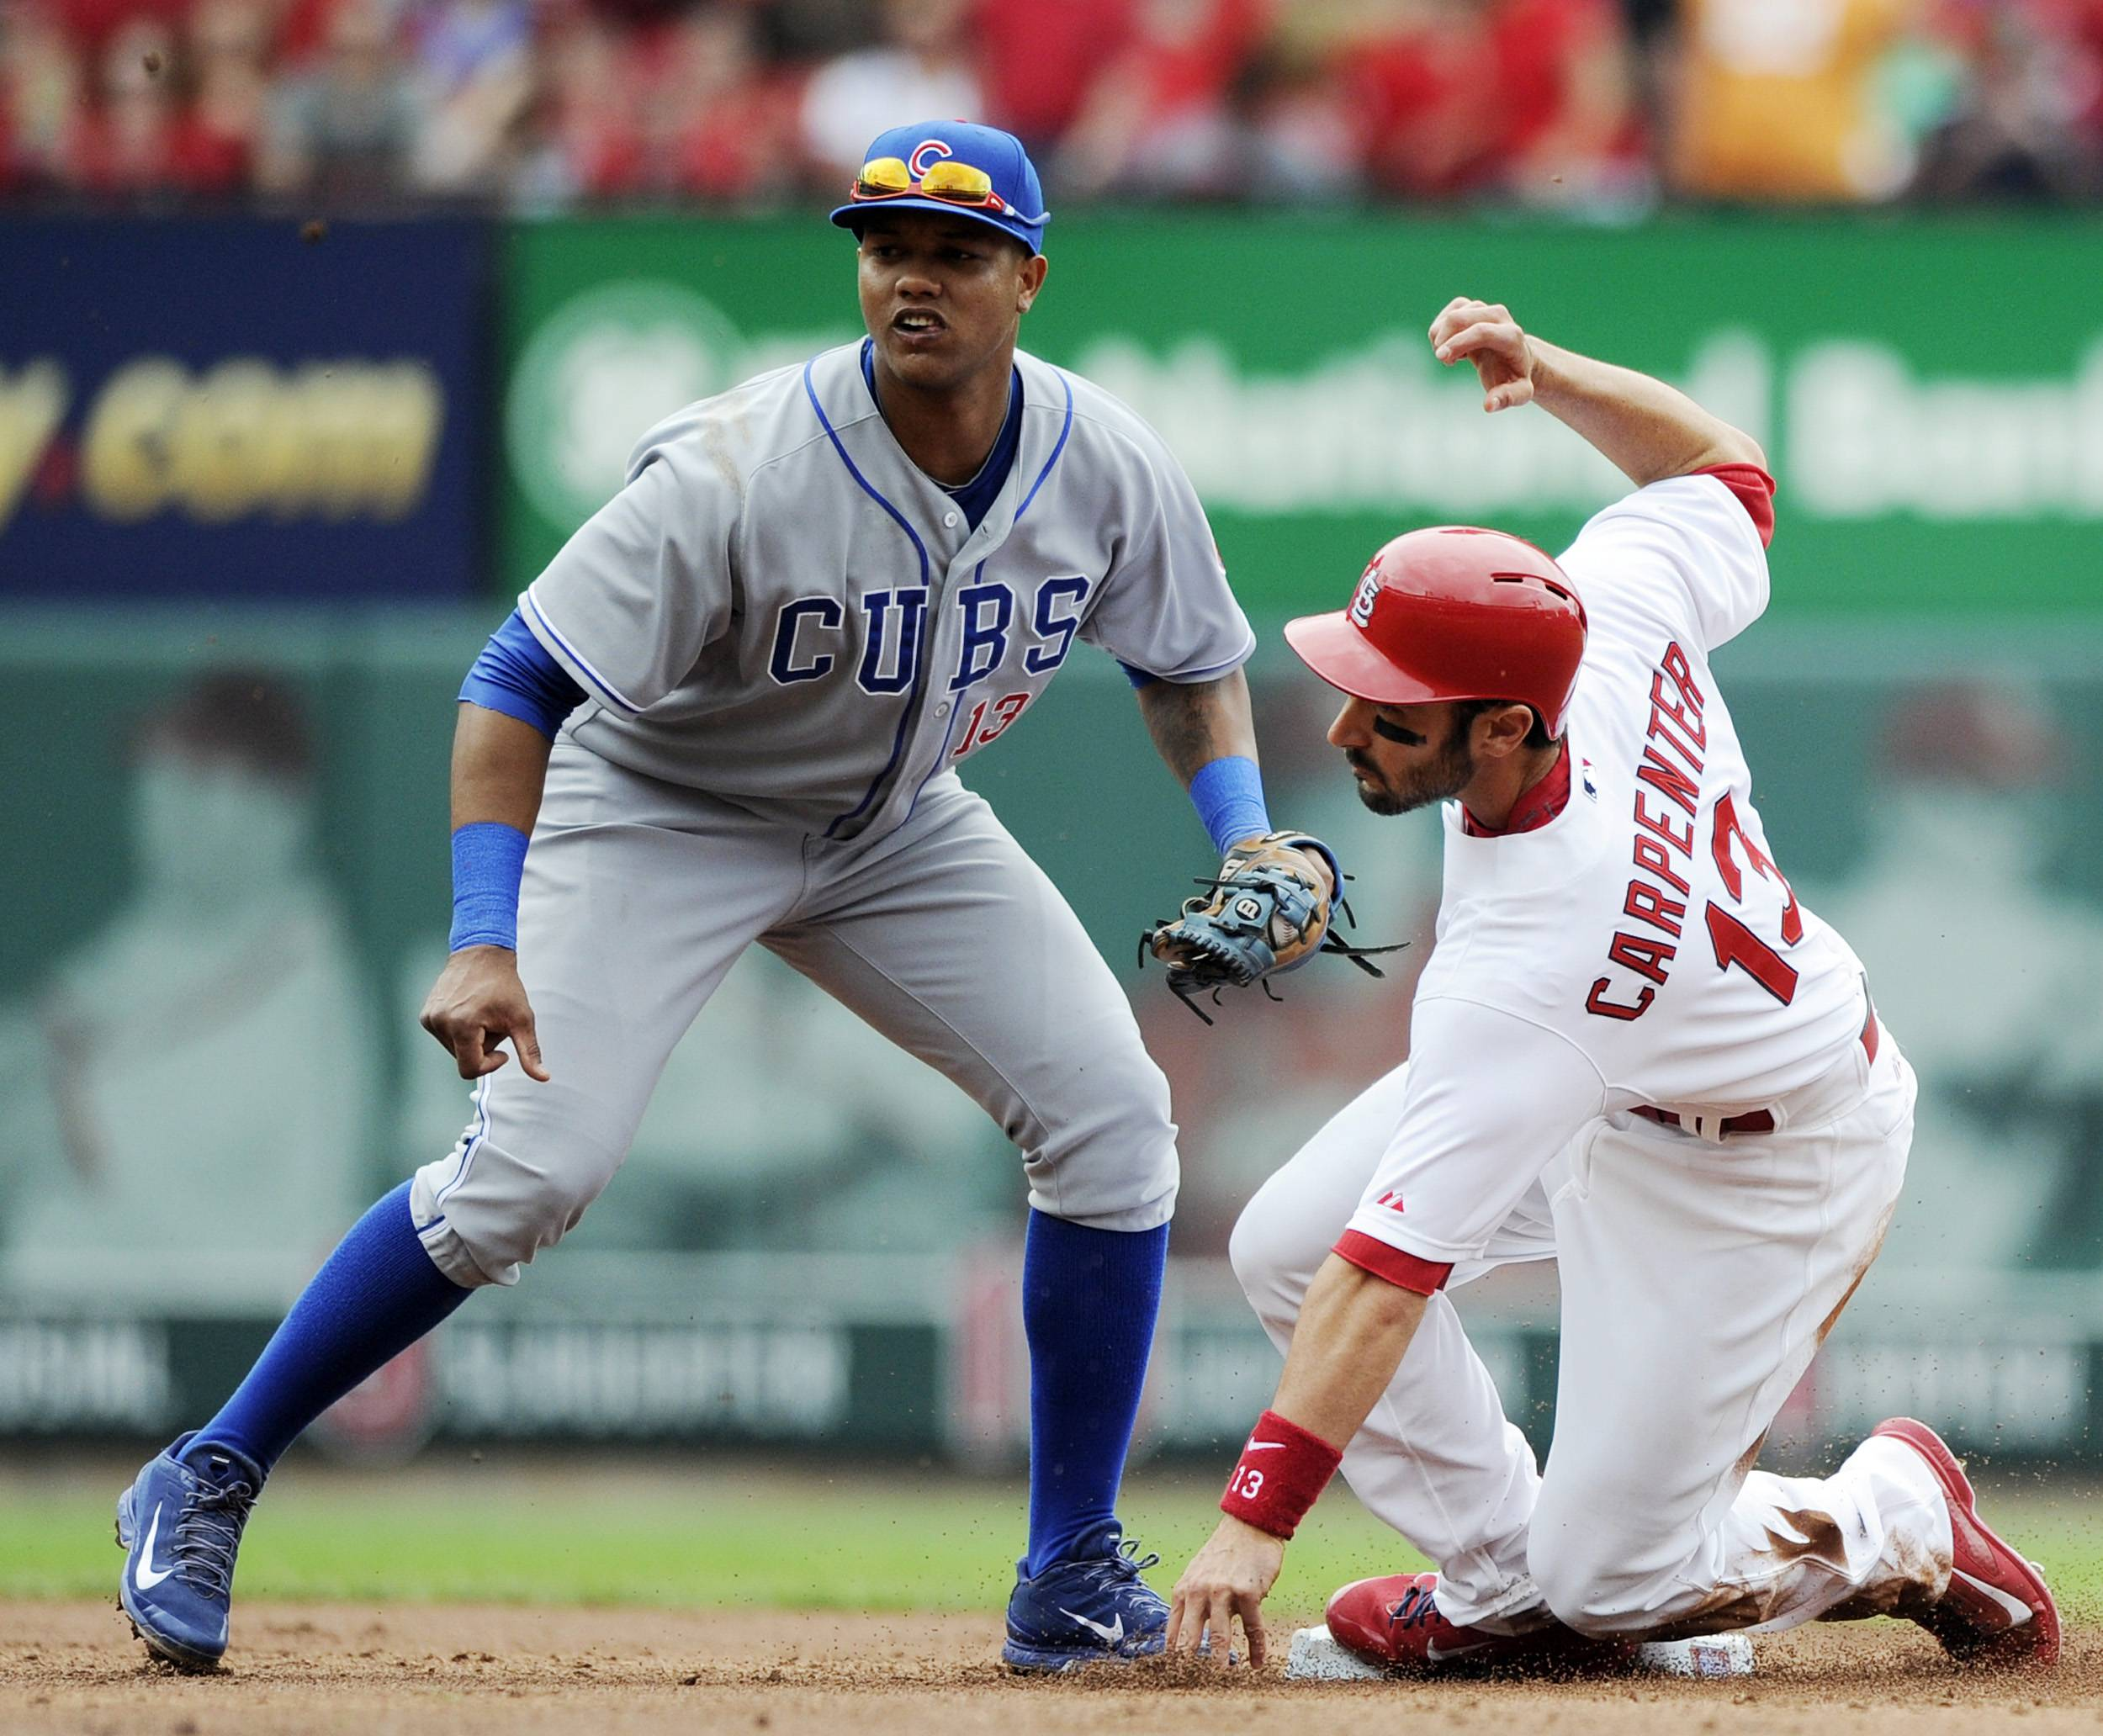 The St. Louis Cardinals' Matt Carpenter, right, steals second as the Cubs' Starlin Castro can't make the tag in the second inning of a baseball game, Sunday, April 13, 2014, in St. Louis.